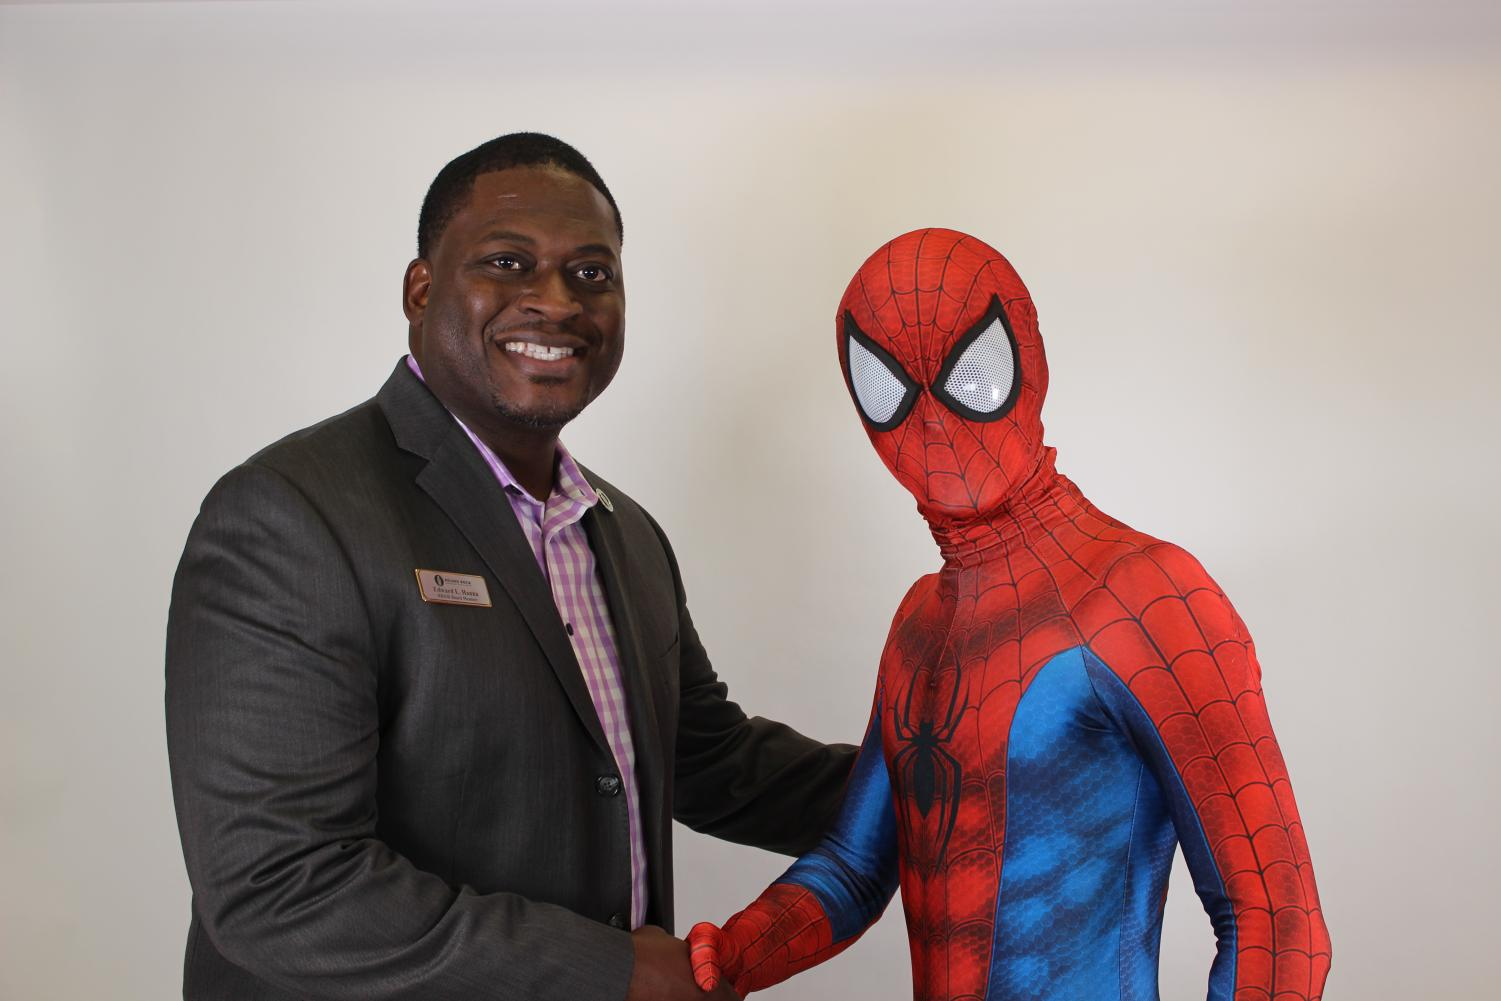 RRISD+Board+of+Trustees+member+Edward+Hanna+and+Spider-Man+exchange+a+handshake.